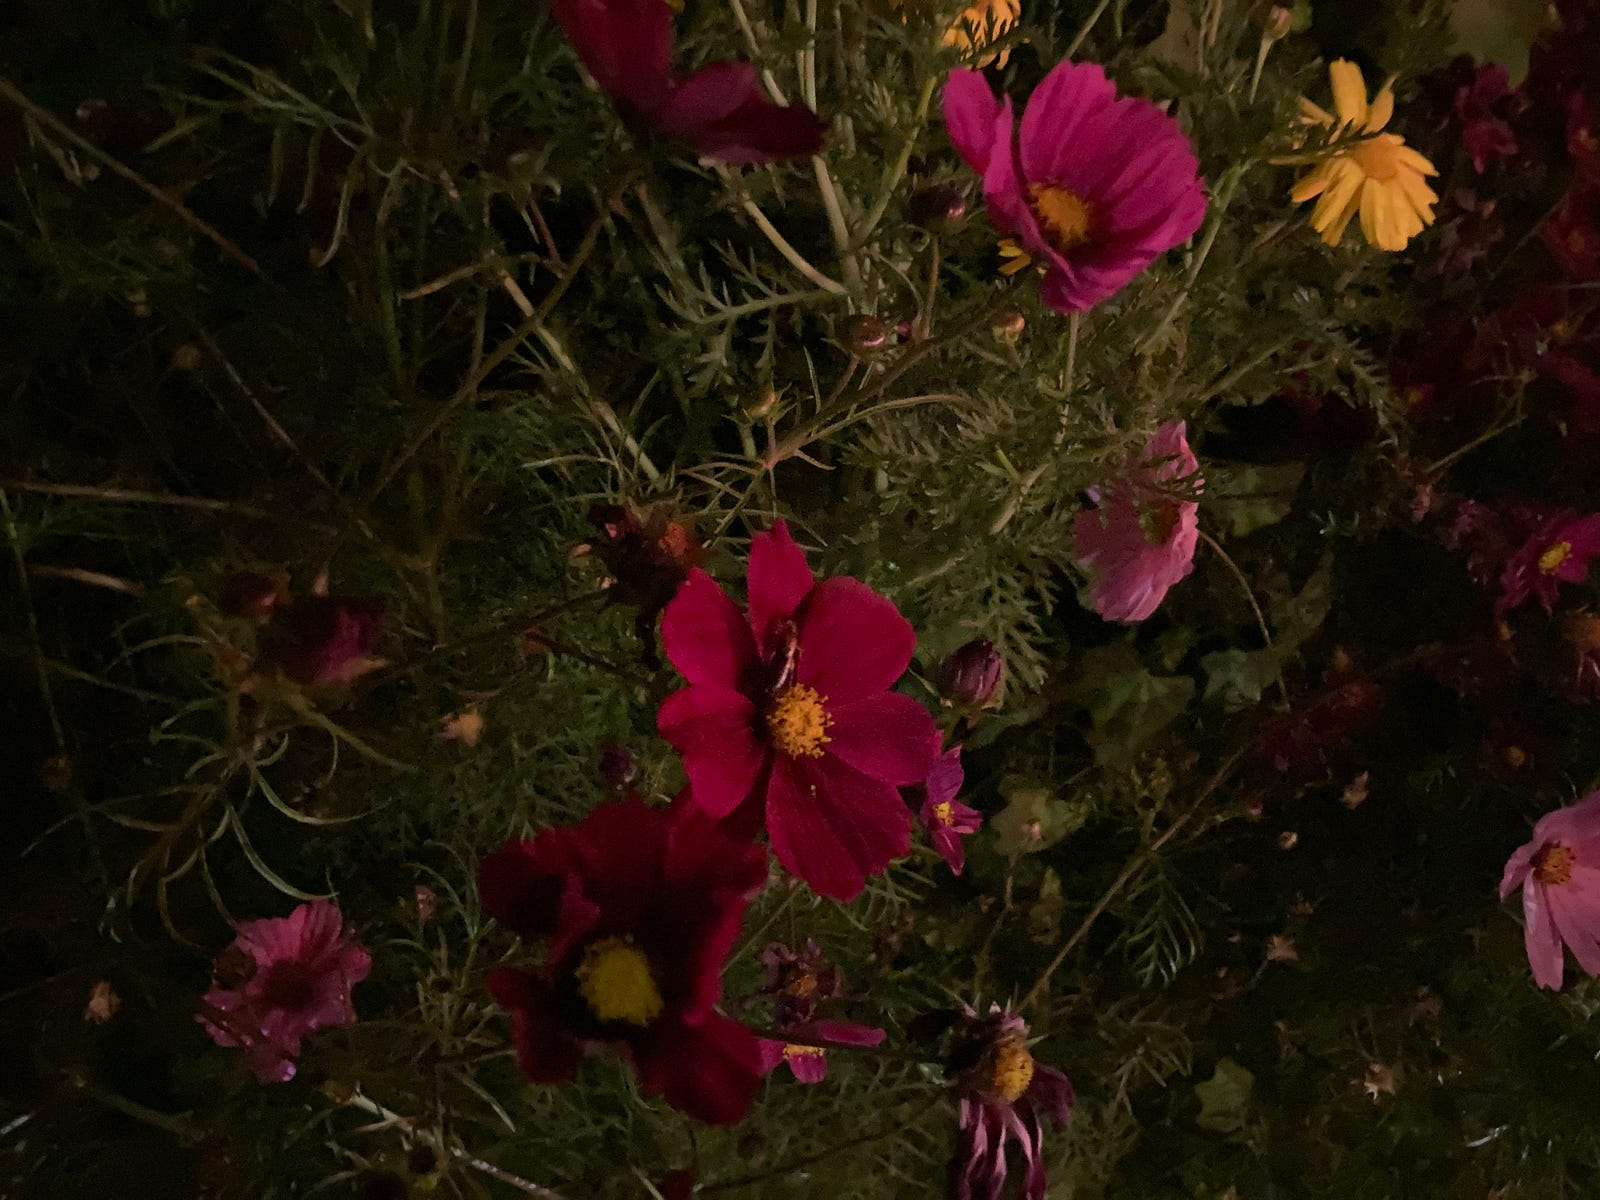 iPhone SE shot of flowers at night